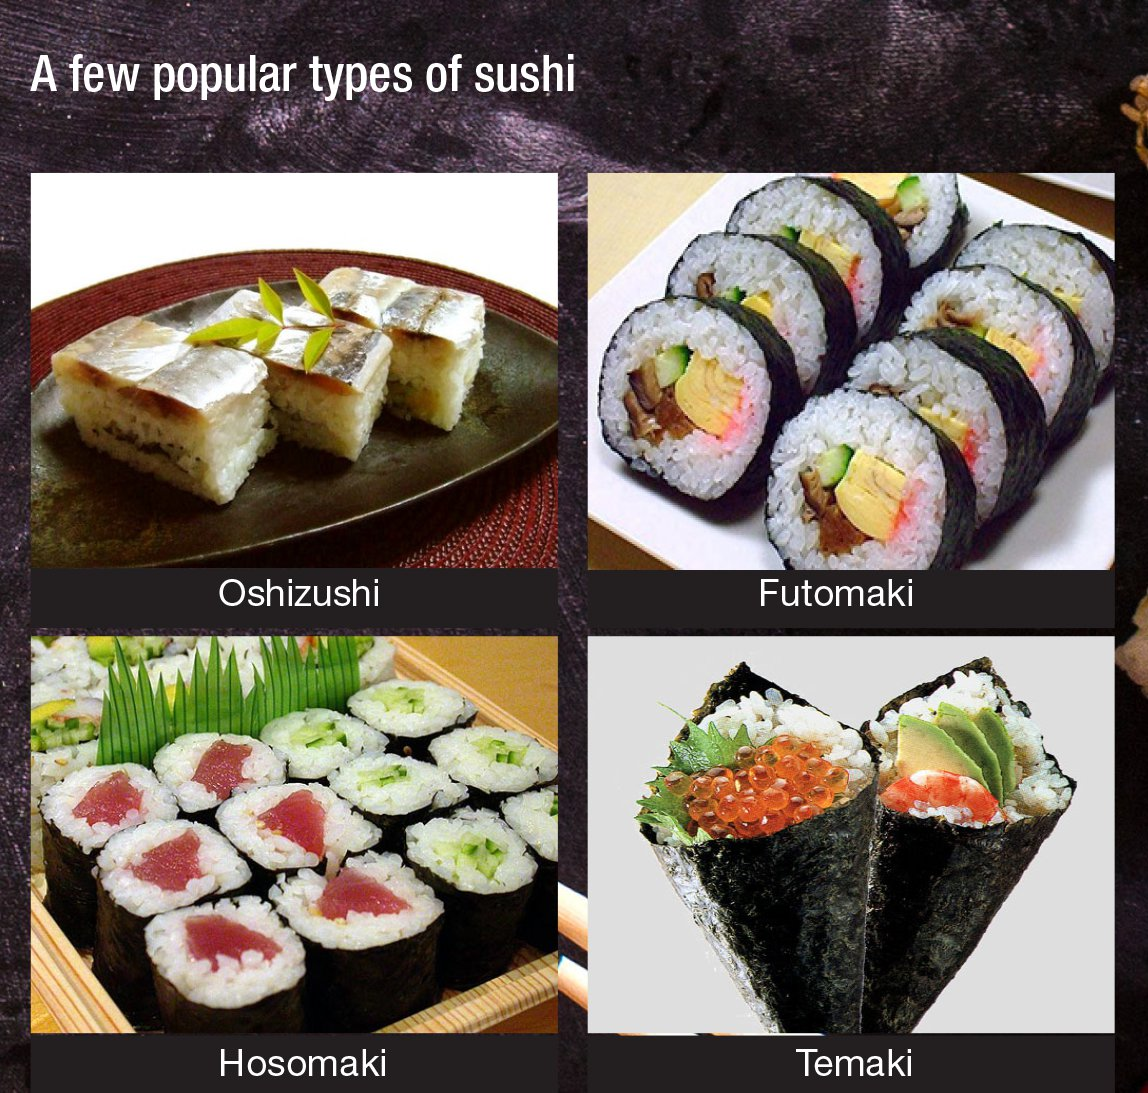 history of sushi Sushi is fancied by many people because sushi provides unique design with amazing taste the combination of fish and vegetables has made sushi as a healthiest meal around in this report, the history of sushi will be trace back as well as the practice and cultural event involved and also the country of origin of sushi.